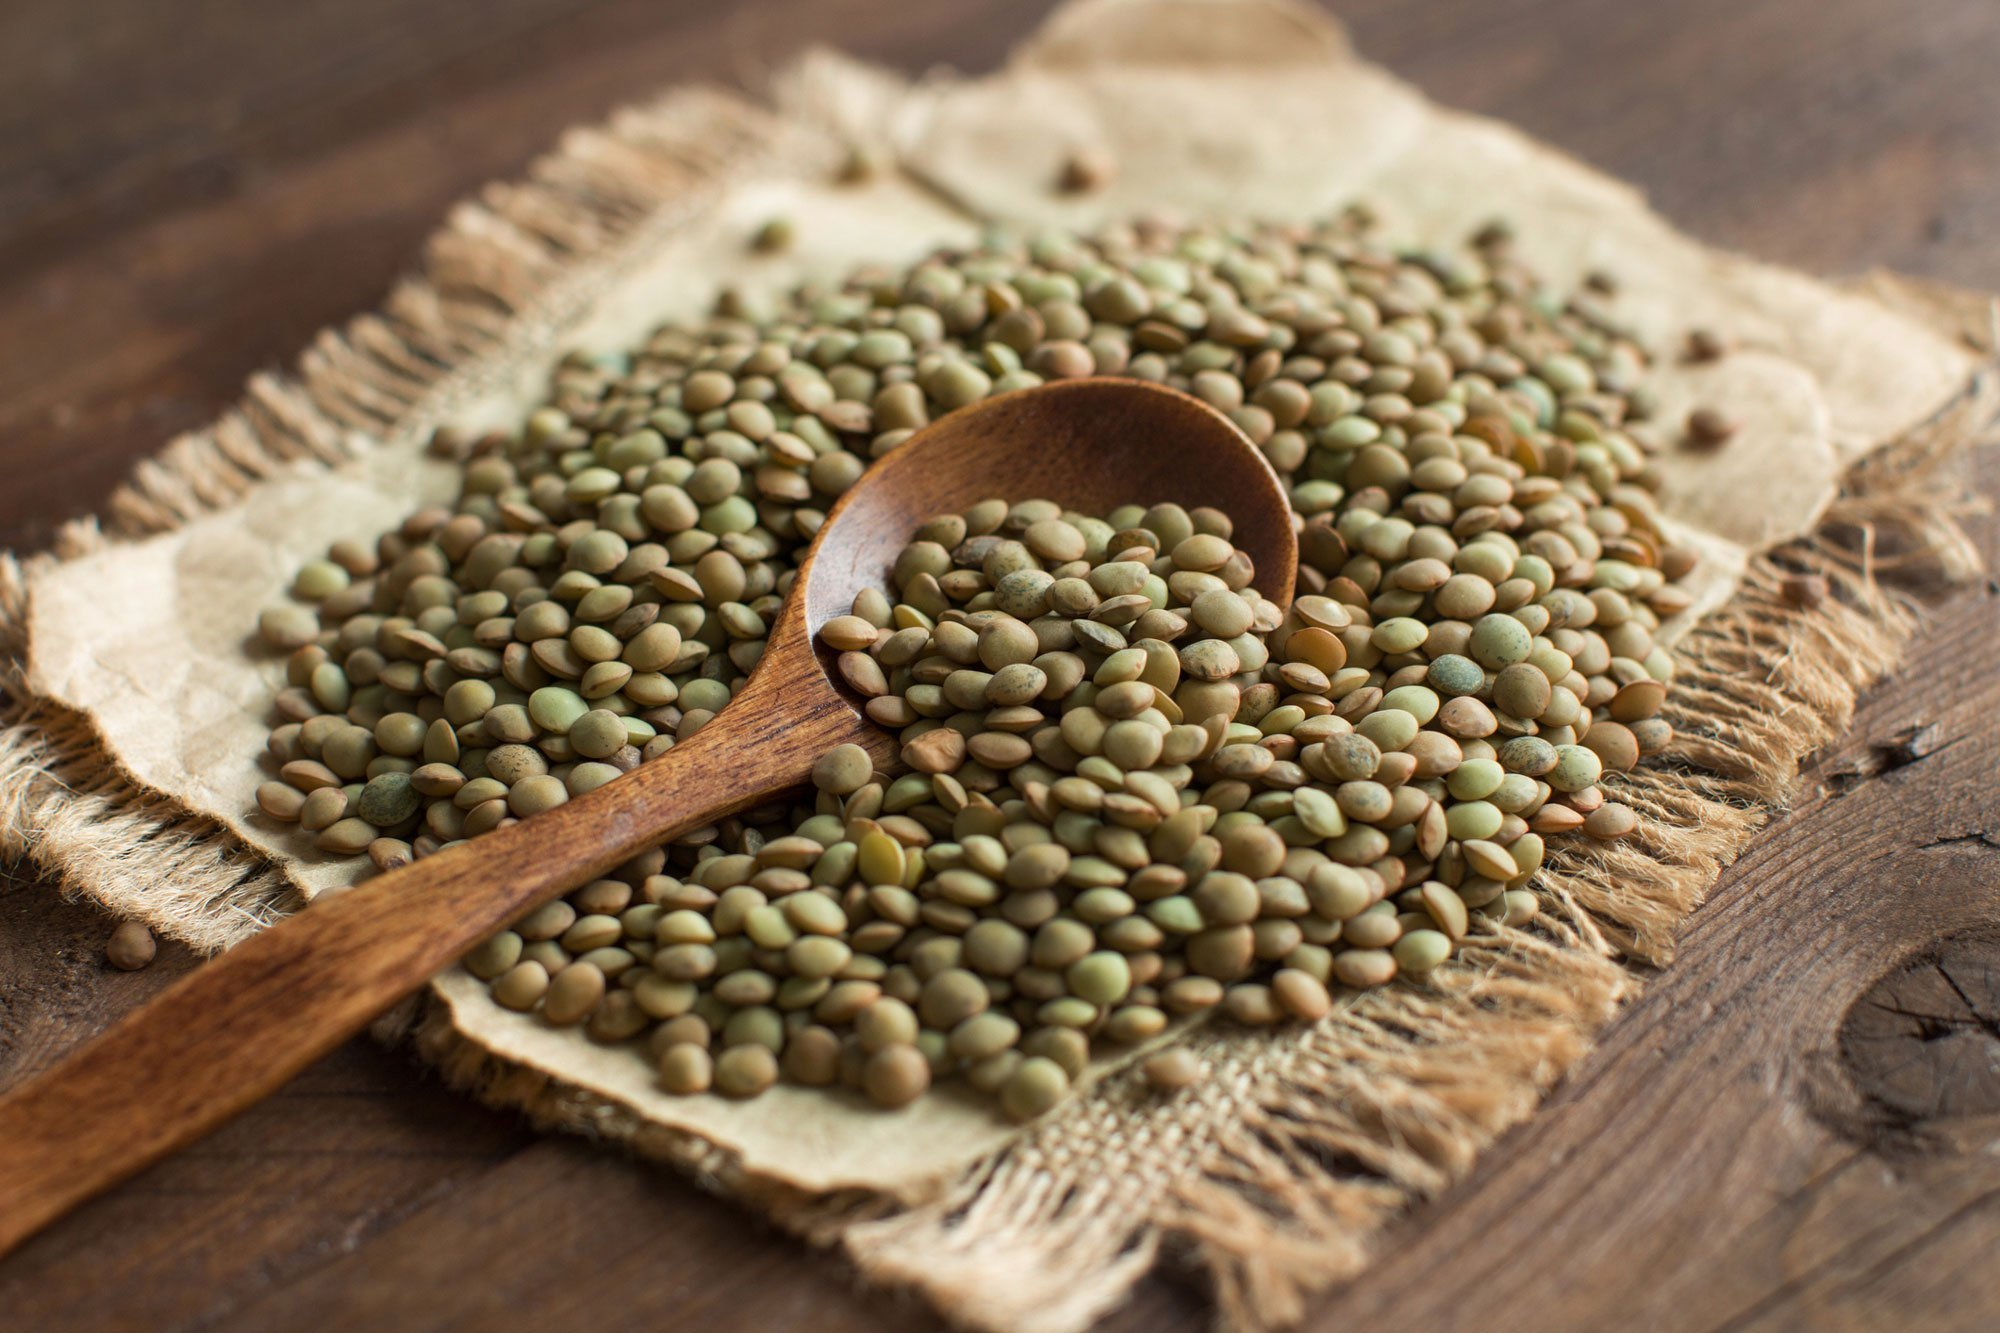 lentils with a wooden spoon